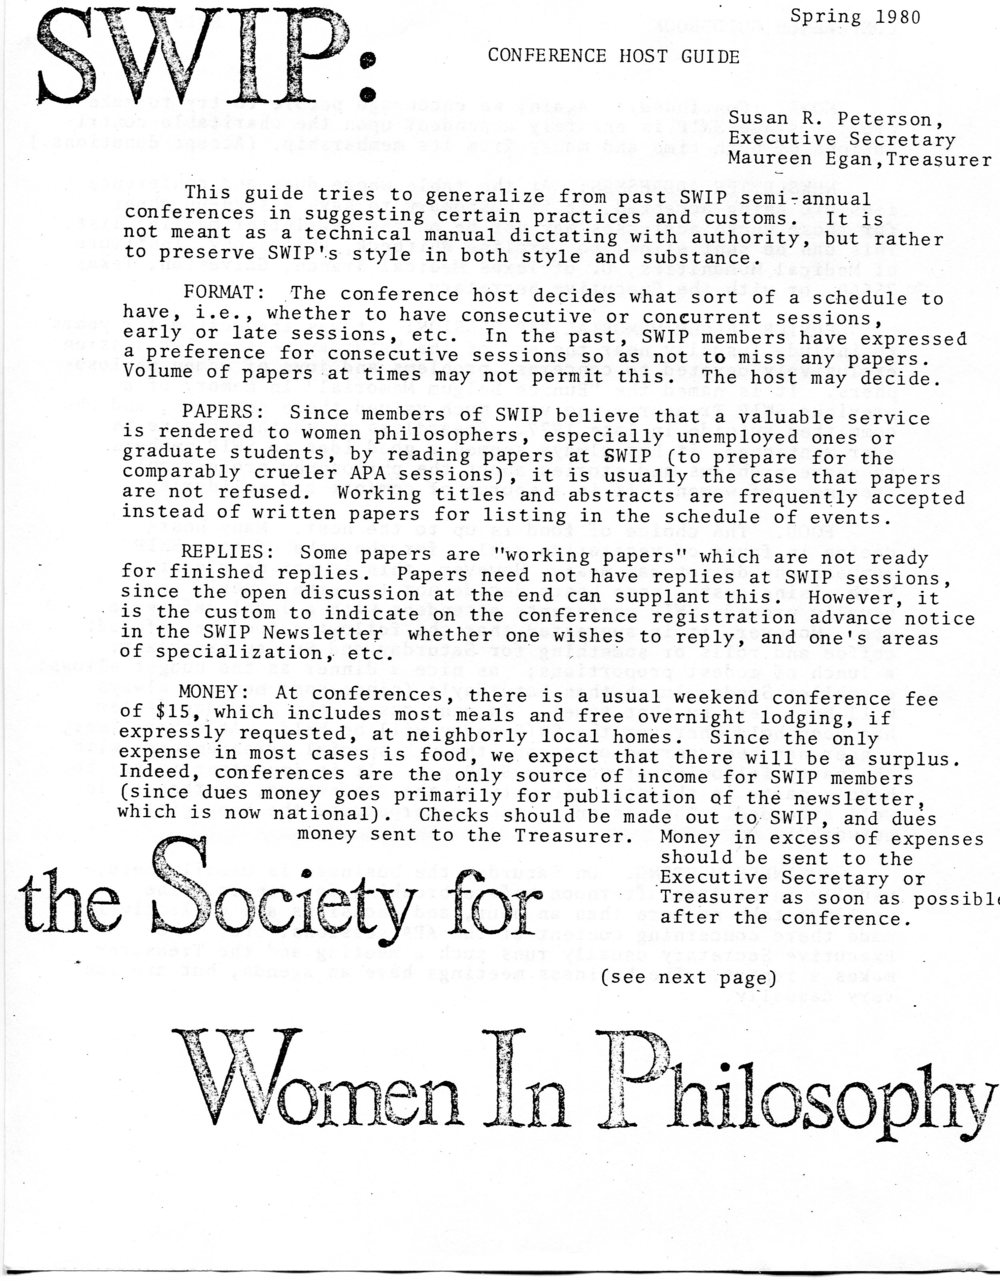 Conference host guide, 1980.  Society for Women in Philosophy Collection, Feminist Theory Archive, Brown University